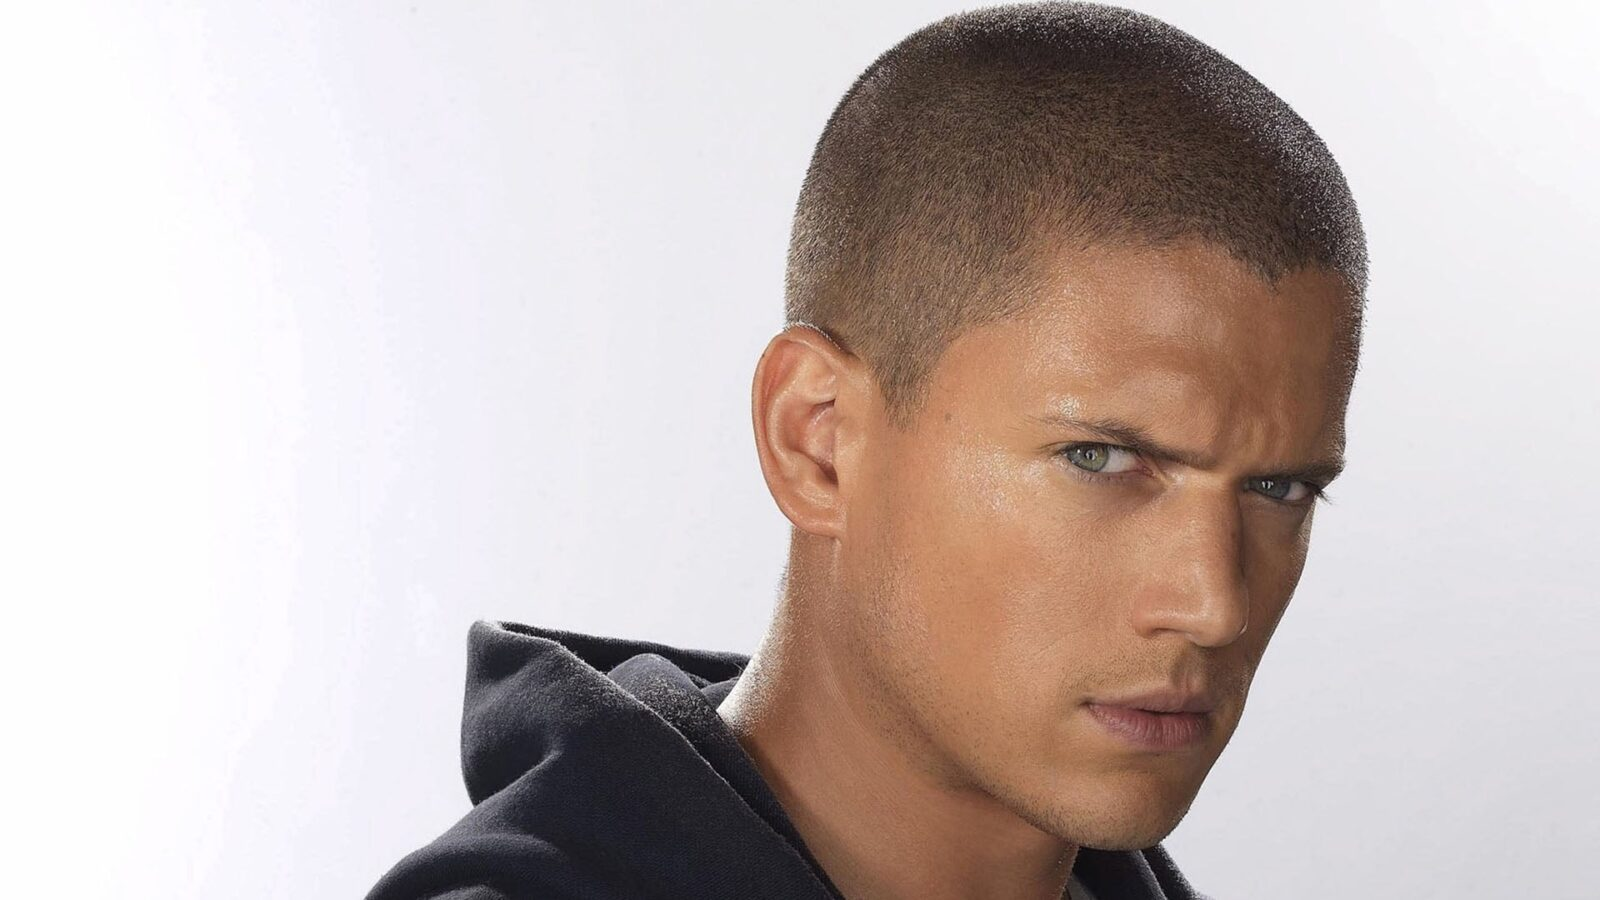 Iphone 5 Hd Wallpapers Cars Wentworth Miller Hd Wallpapers Free Download